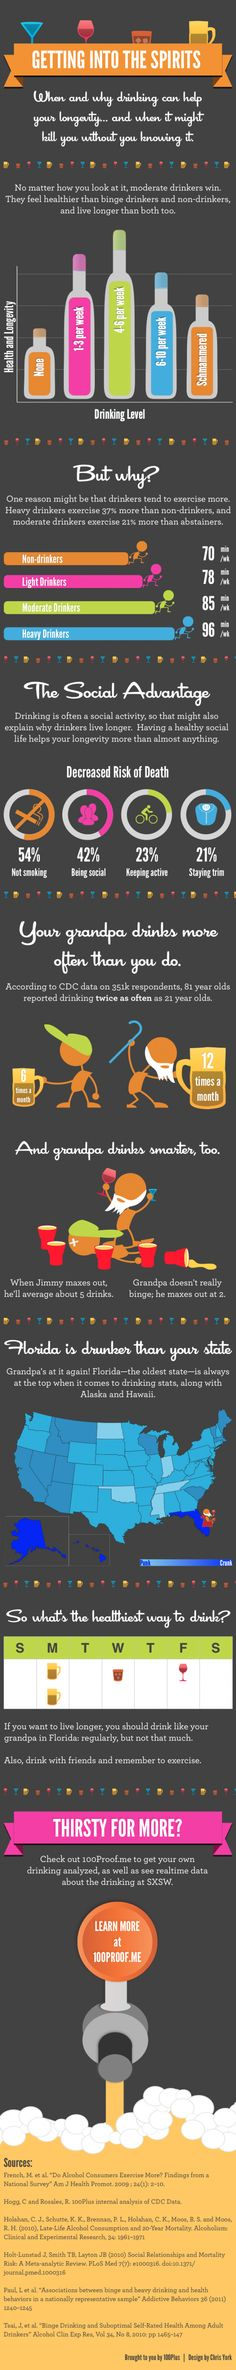 Infographic: Getting Into The Spirits - Strange Facts About Drinking (Apparently #FL is the drunkest state. Figures.)